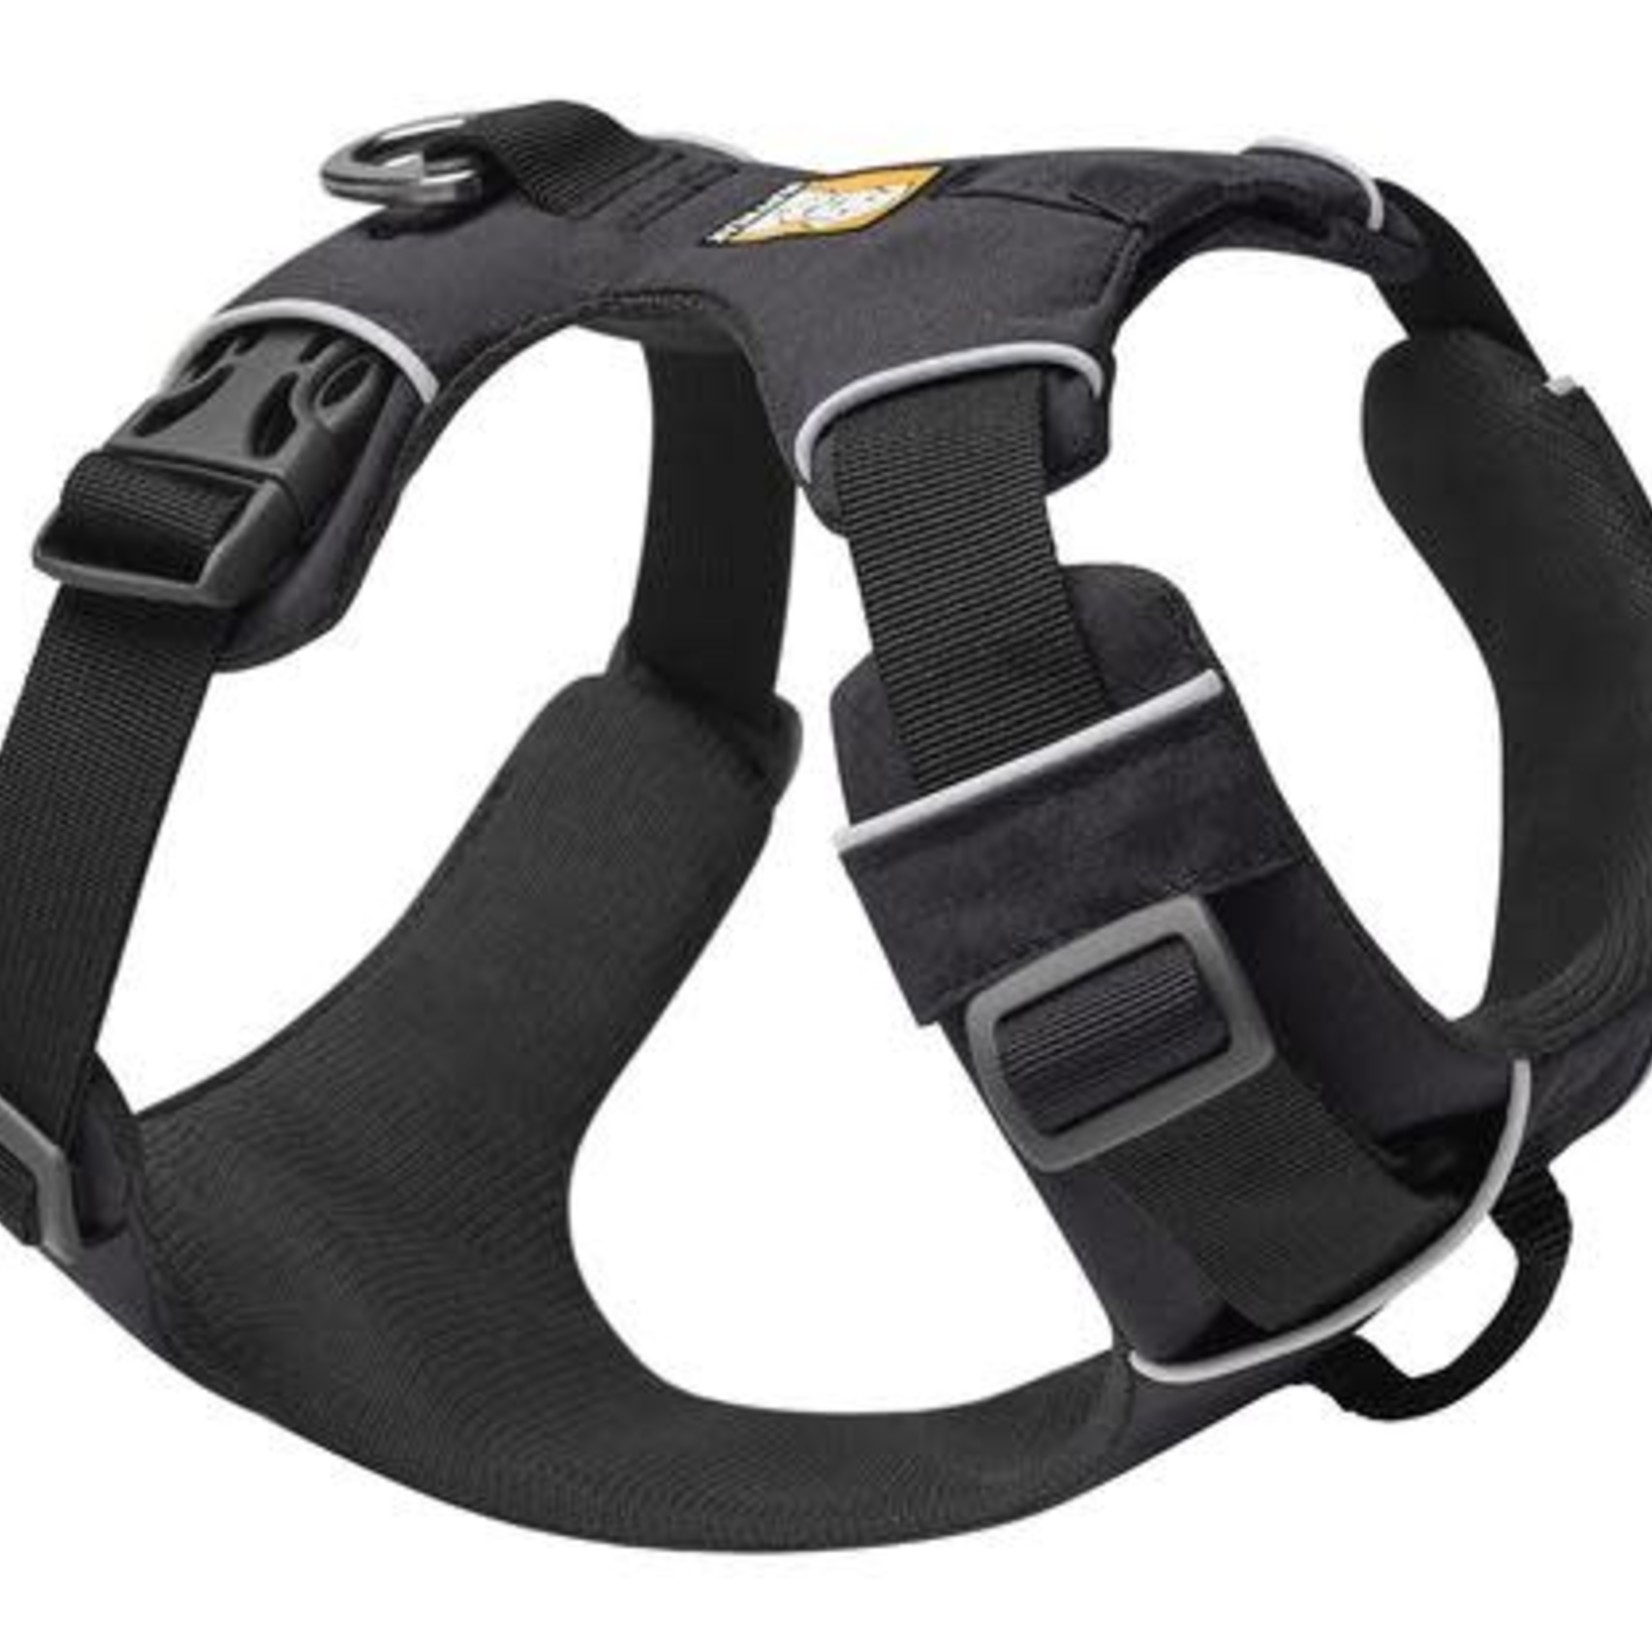 Ruff Wear Ruffwear Front Range Harness Twilight Gray Large / X-Large